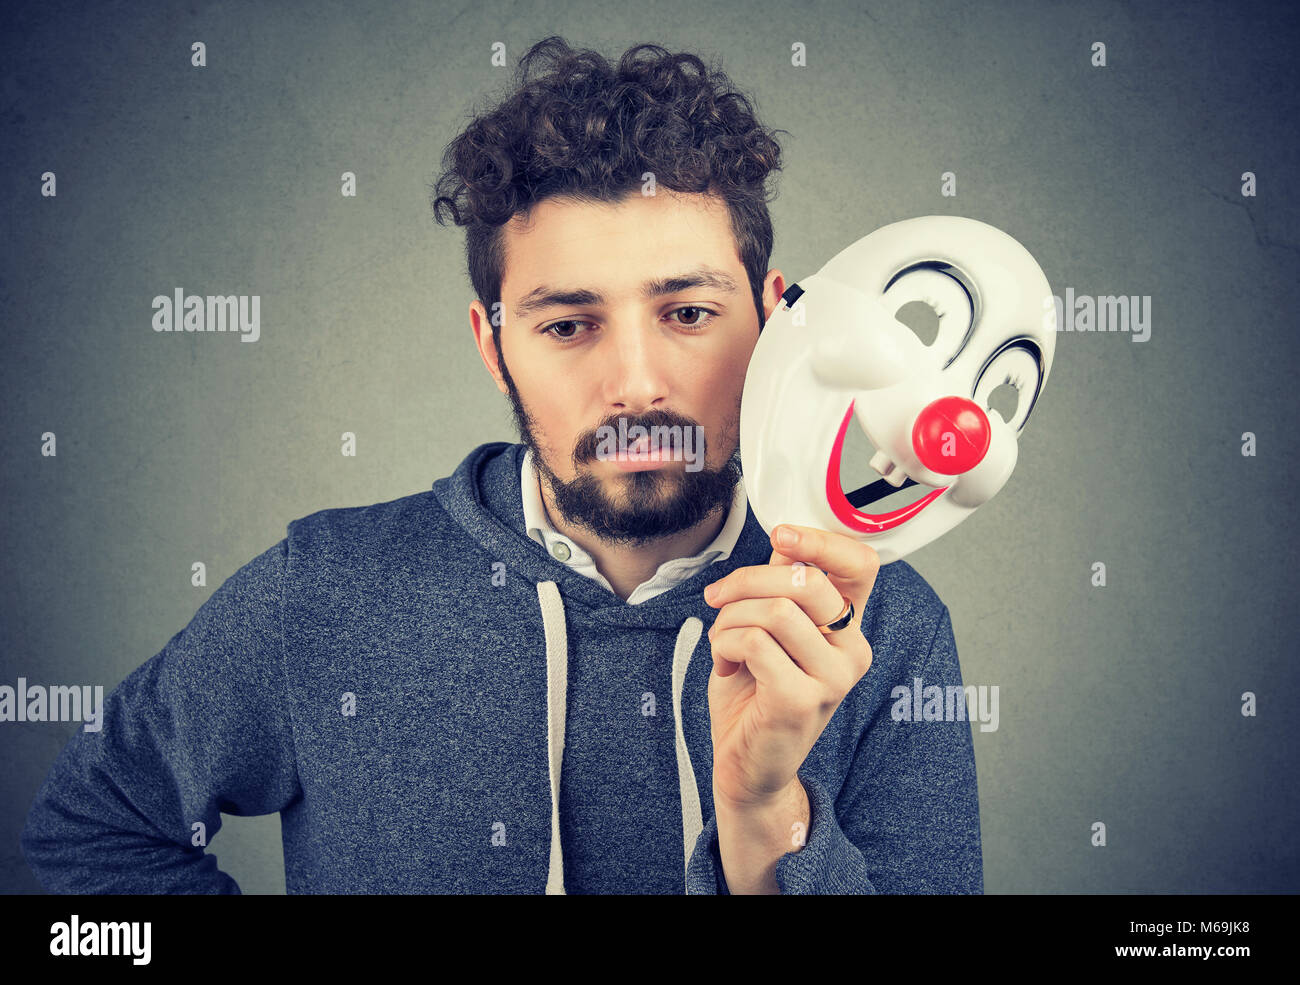 Young bearded upset man covering personality with happy clown mask on gray background. - Stock Image